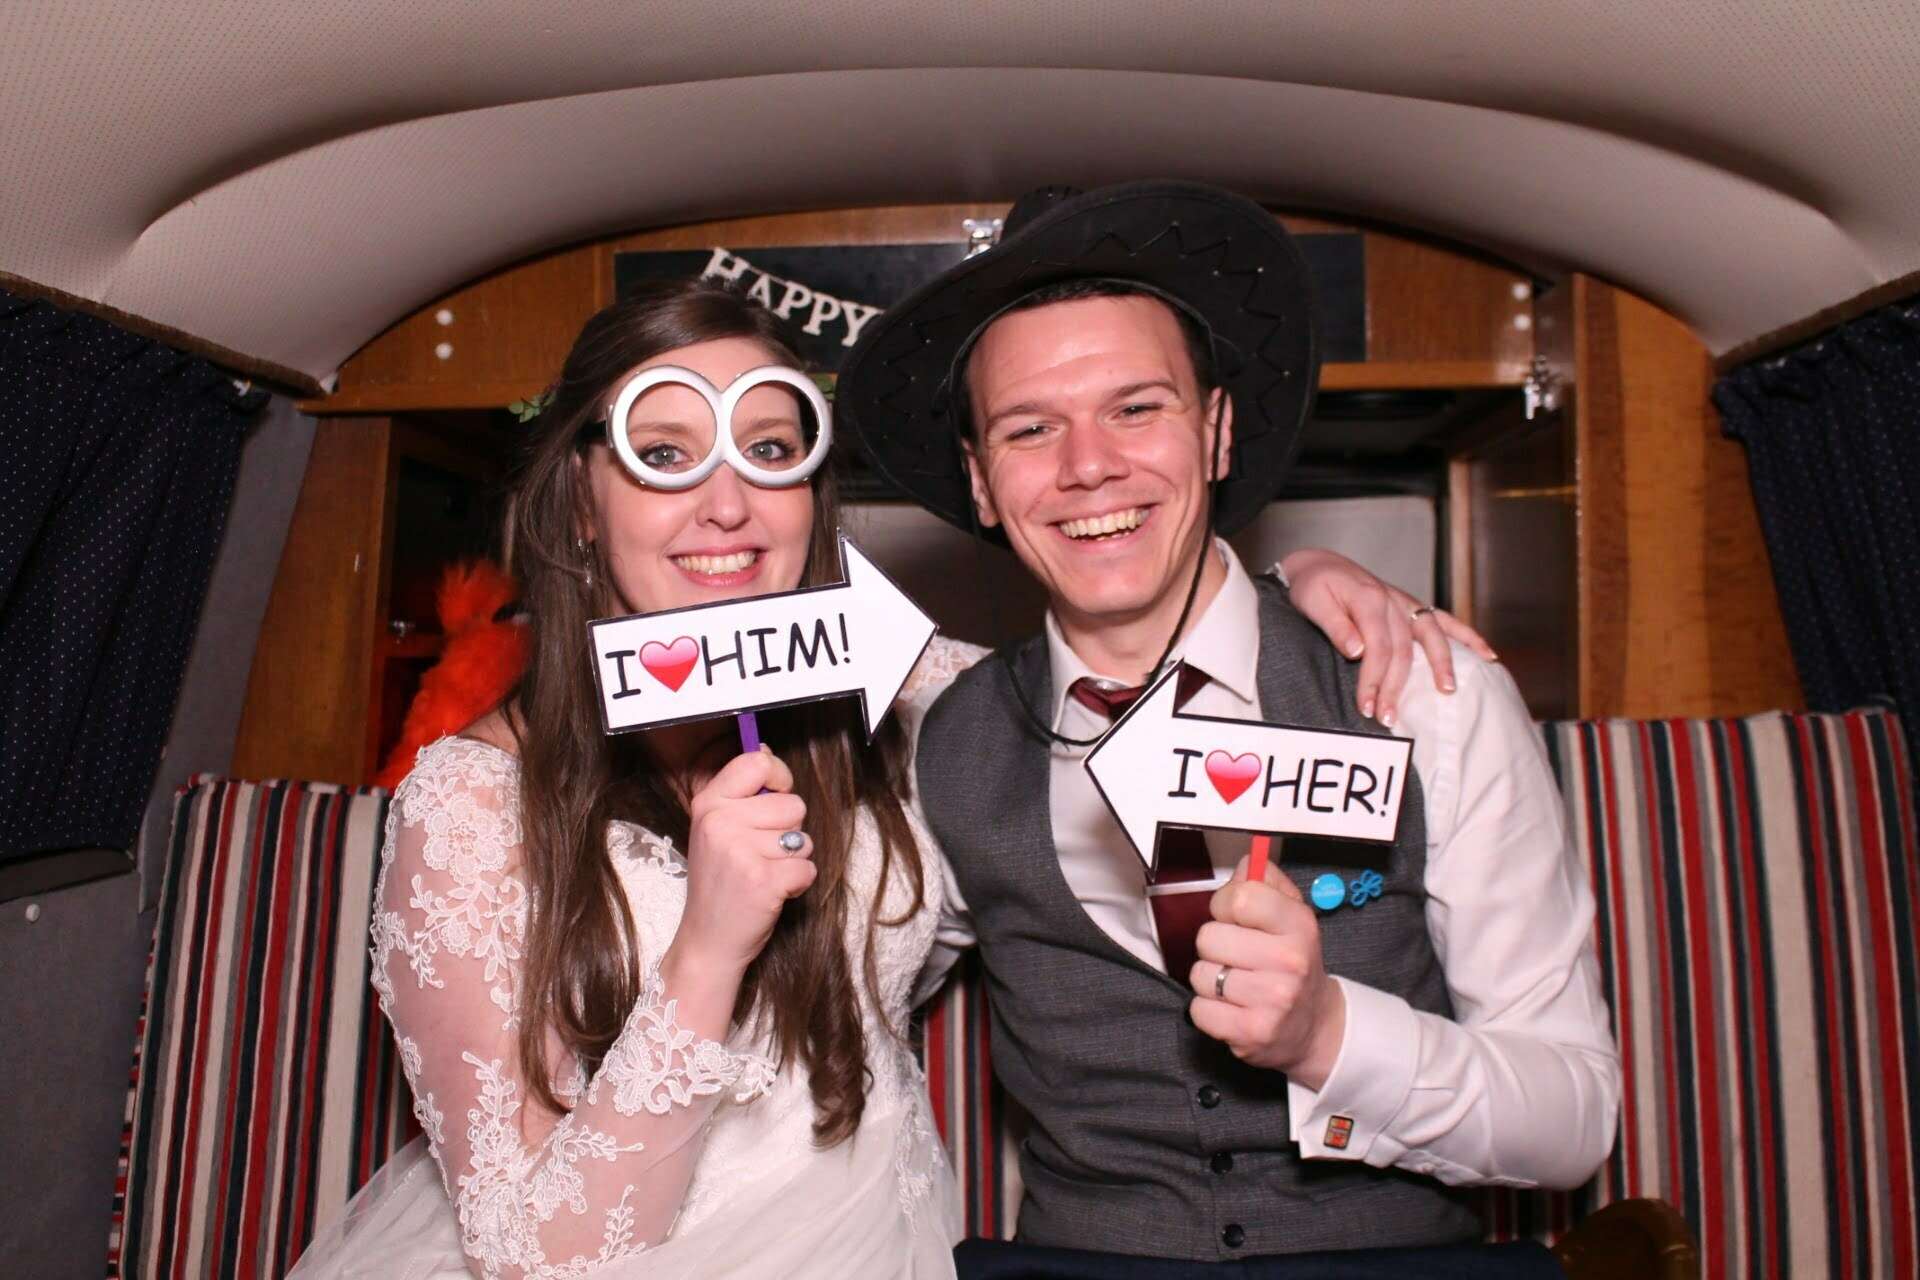 bride and groom photo booth picture